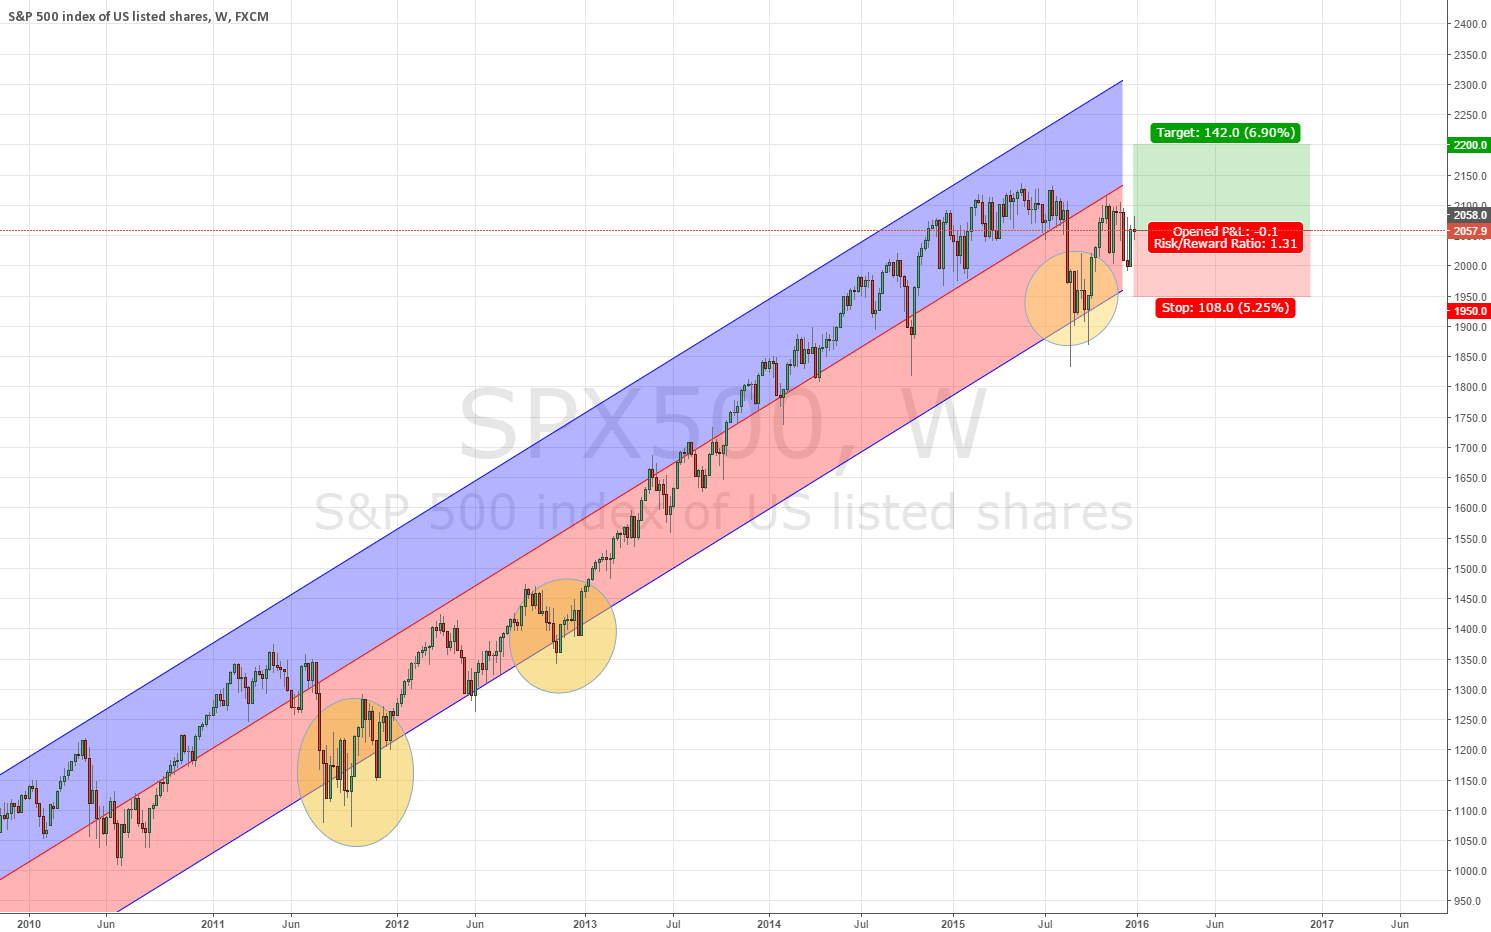 SP500 outlook